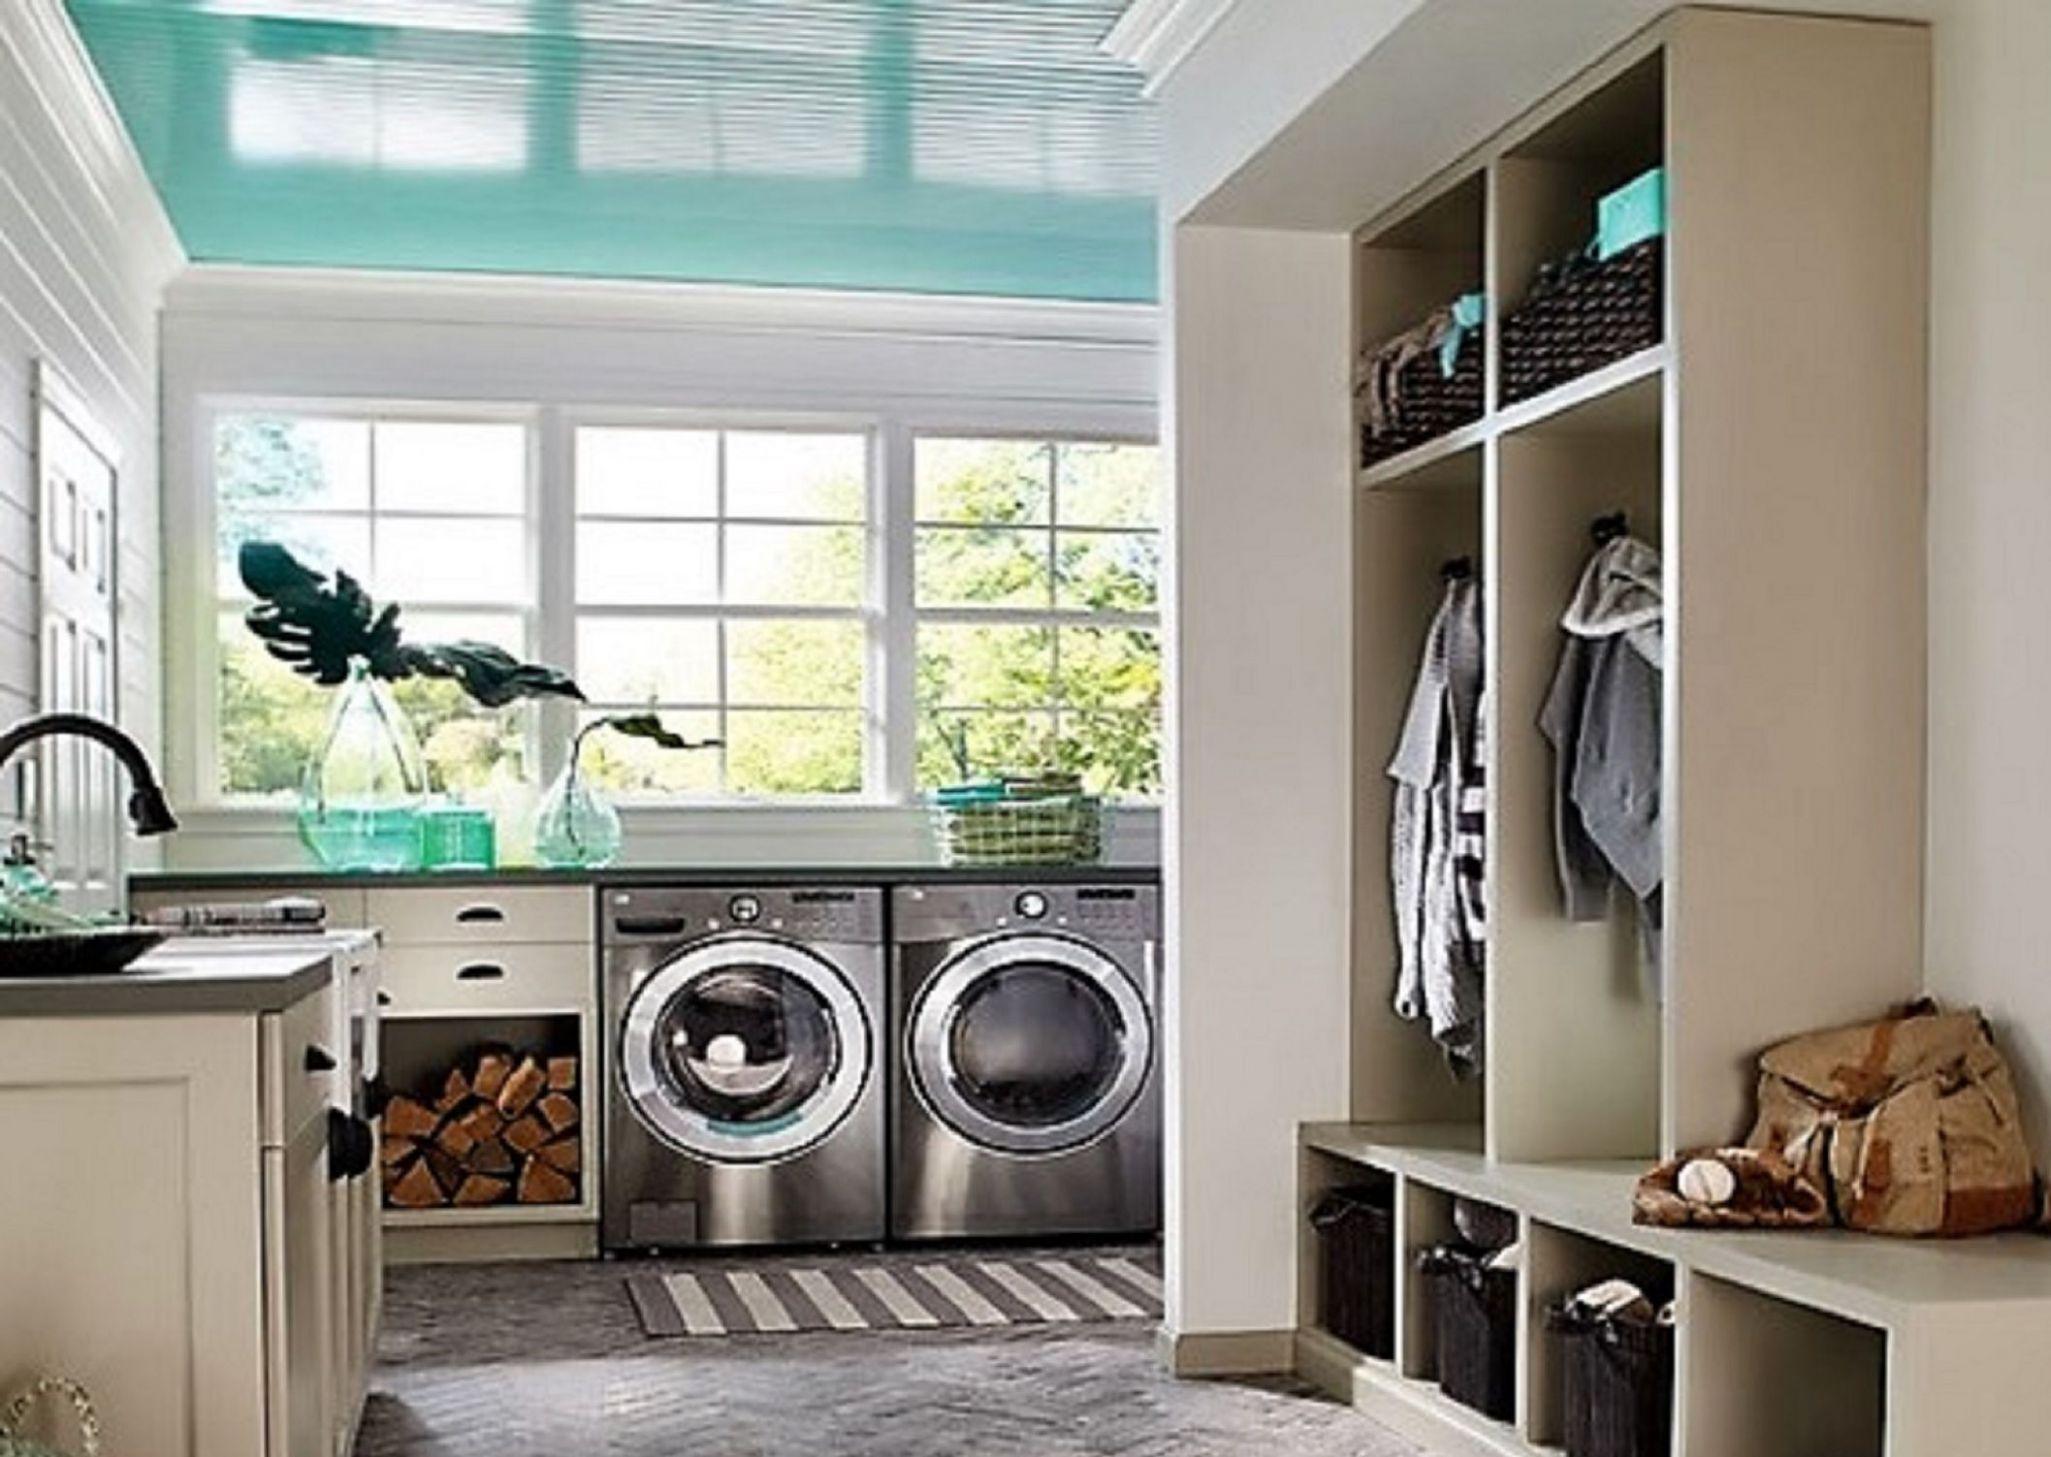 10 Inspiring Laundry Room Design Ideas